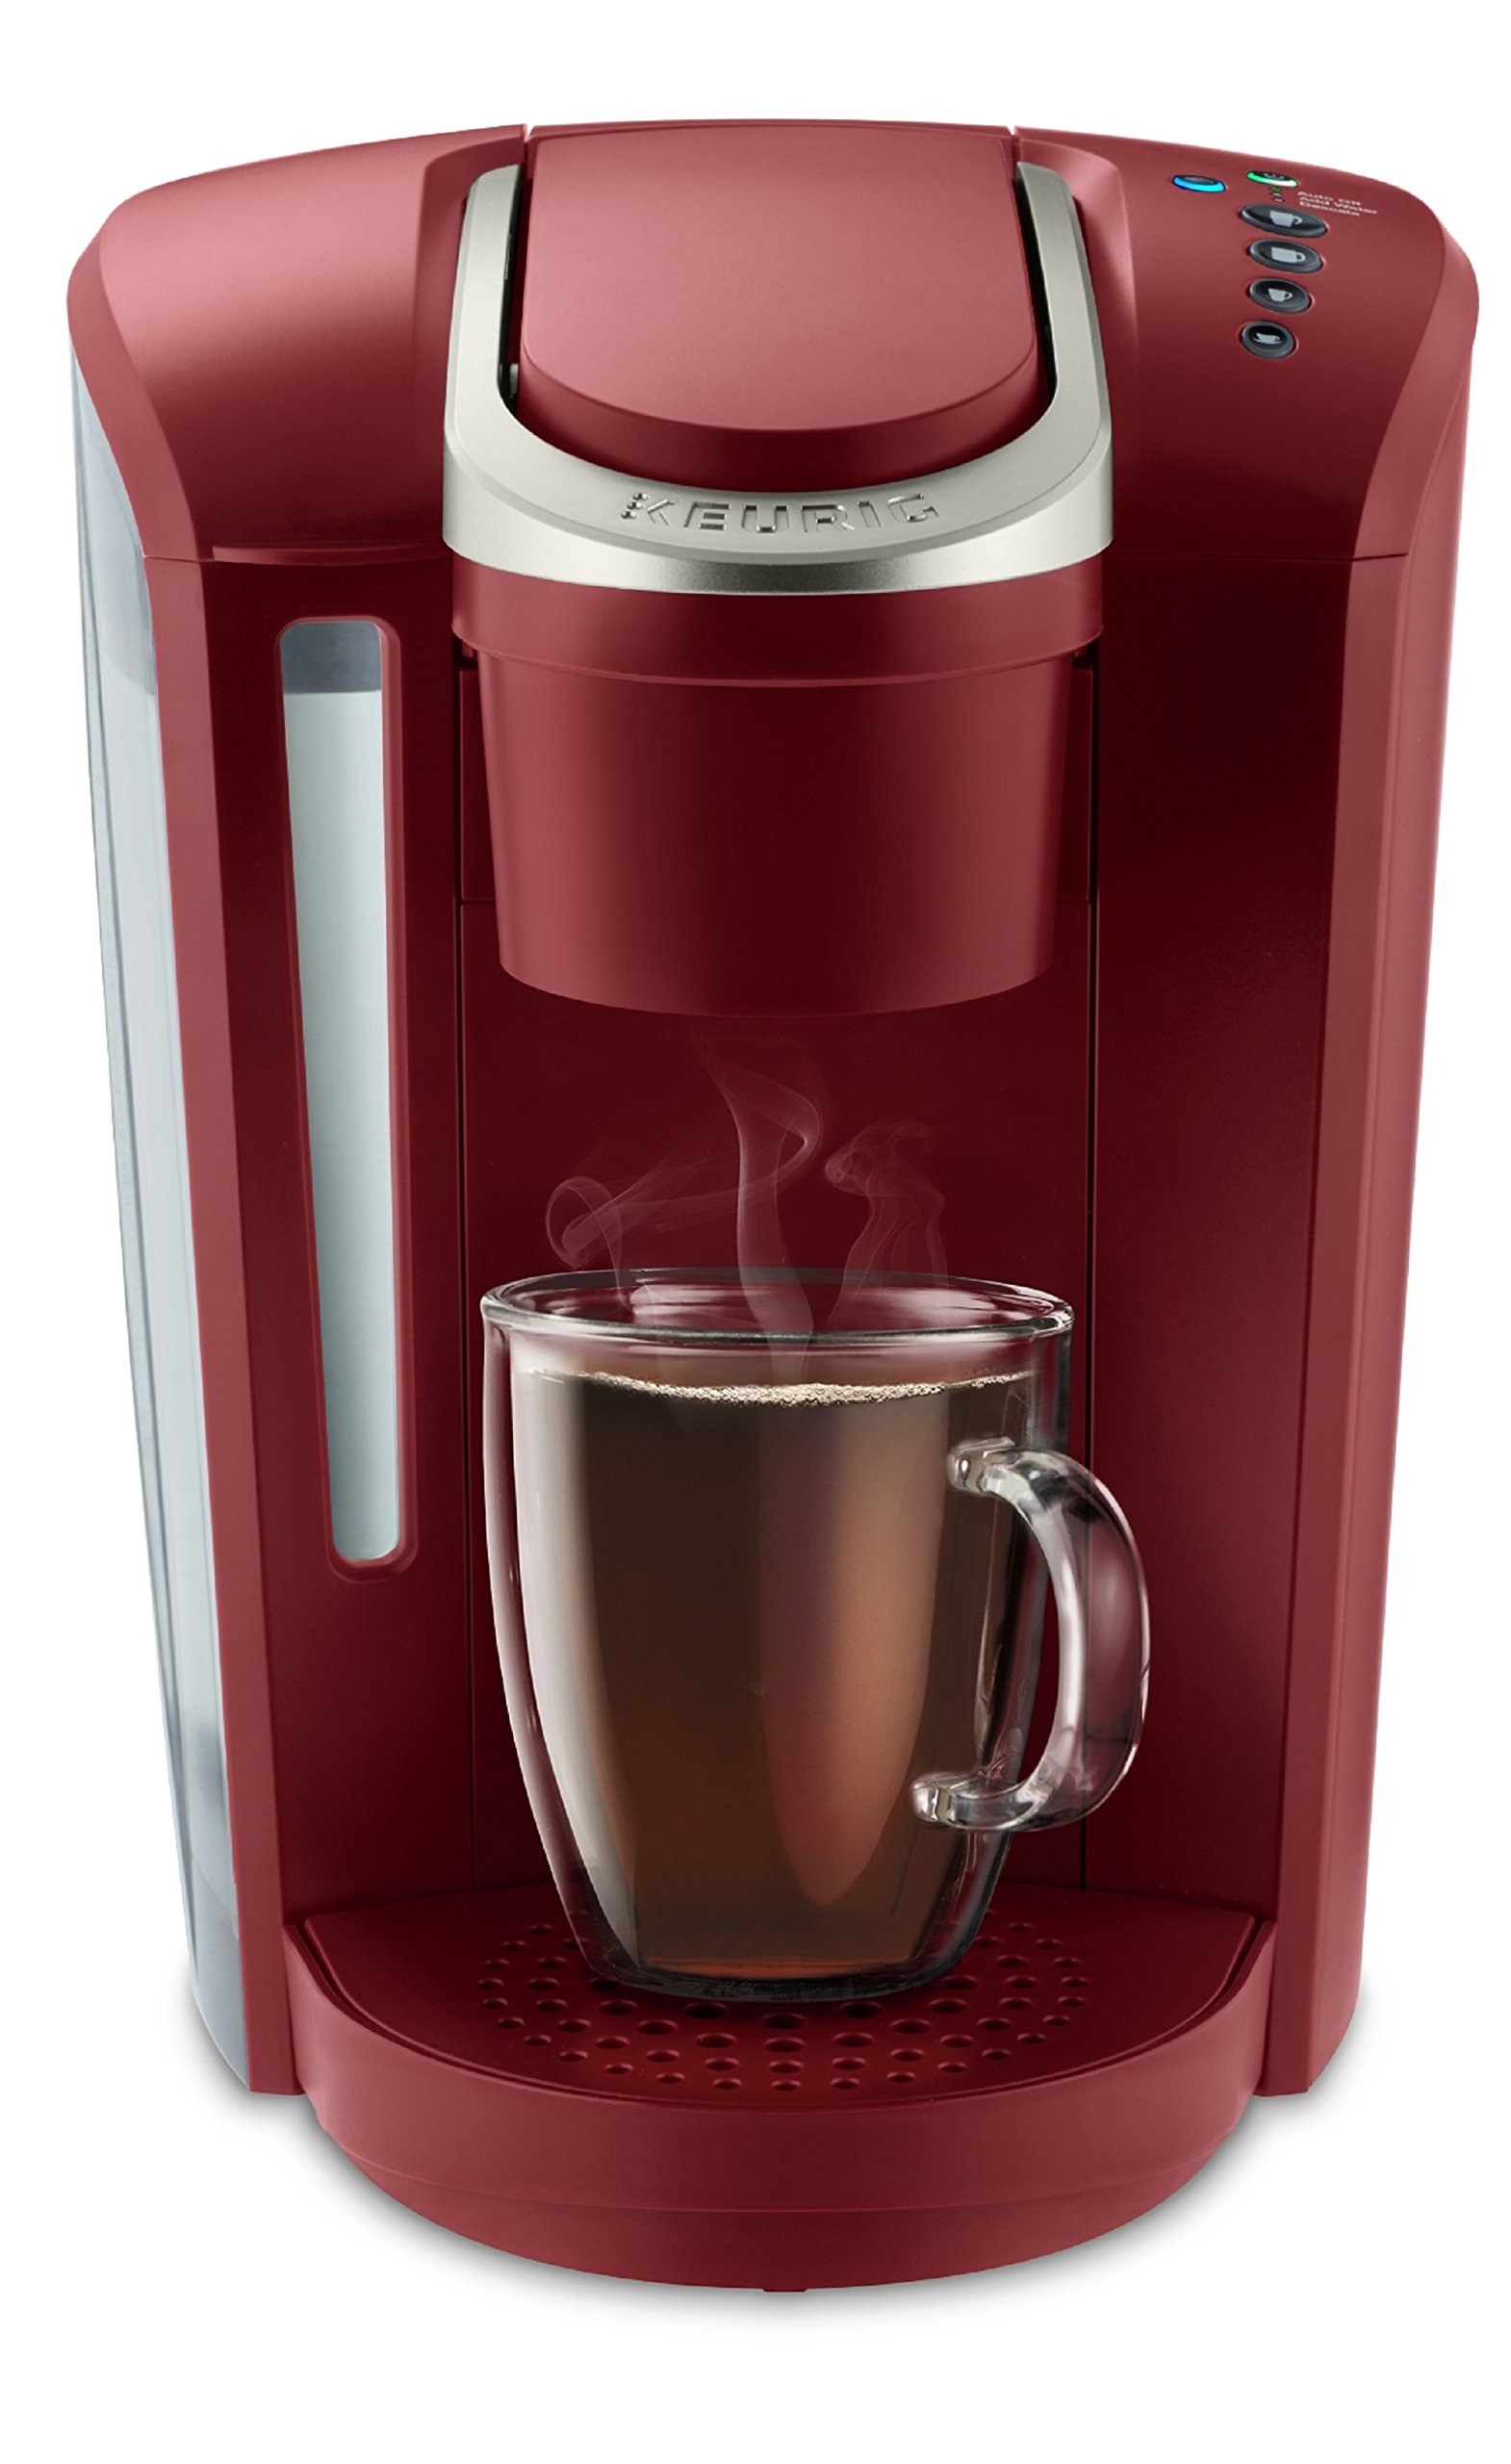 Keurig K-Select Coffee Maker, Single-Serve K-Cup Pod Coffee Machine, Vintage Red